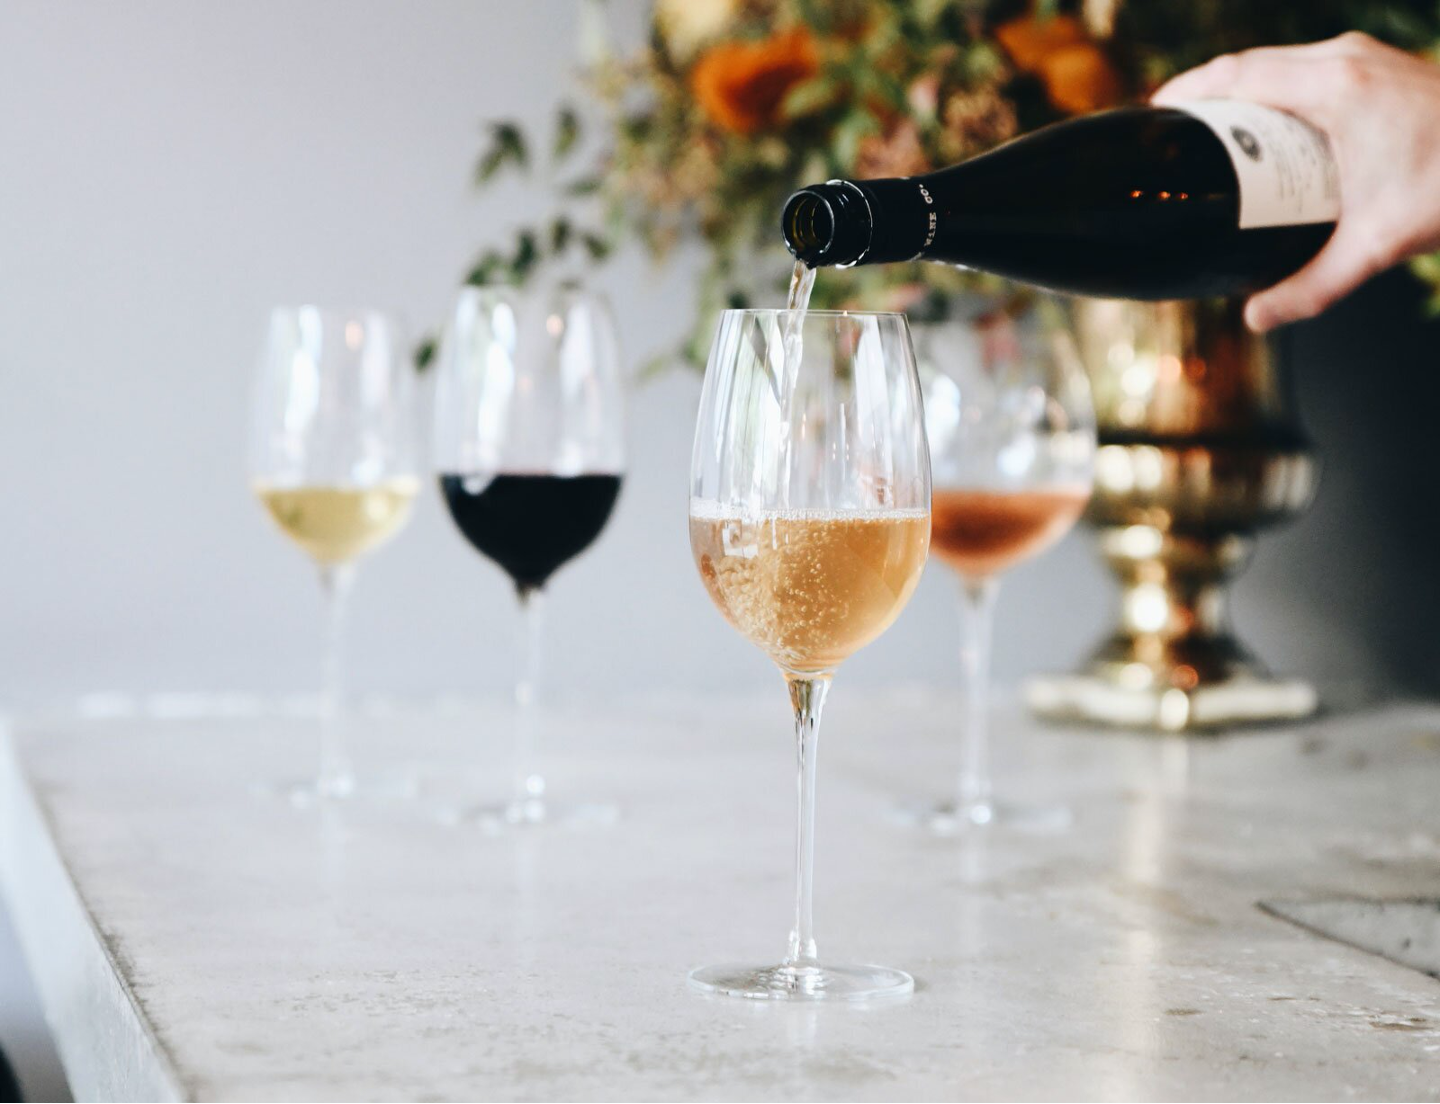 Pouring wines into four goblets